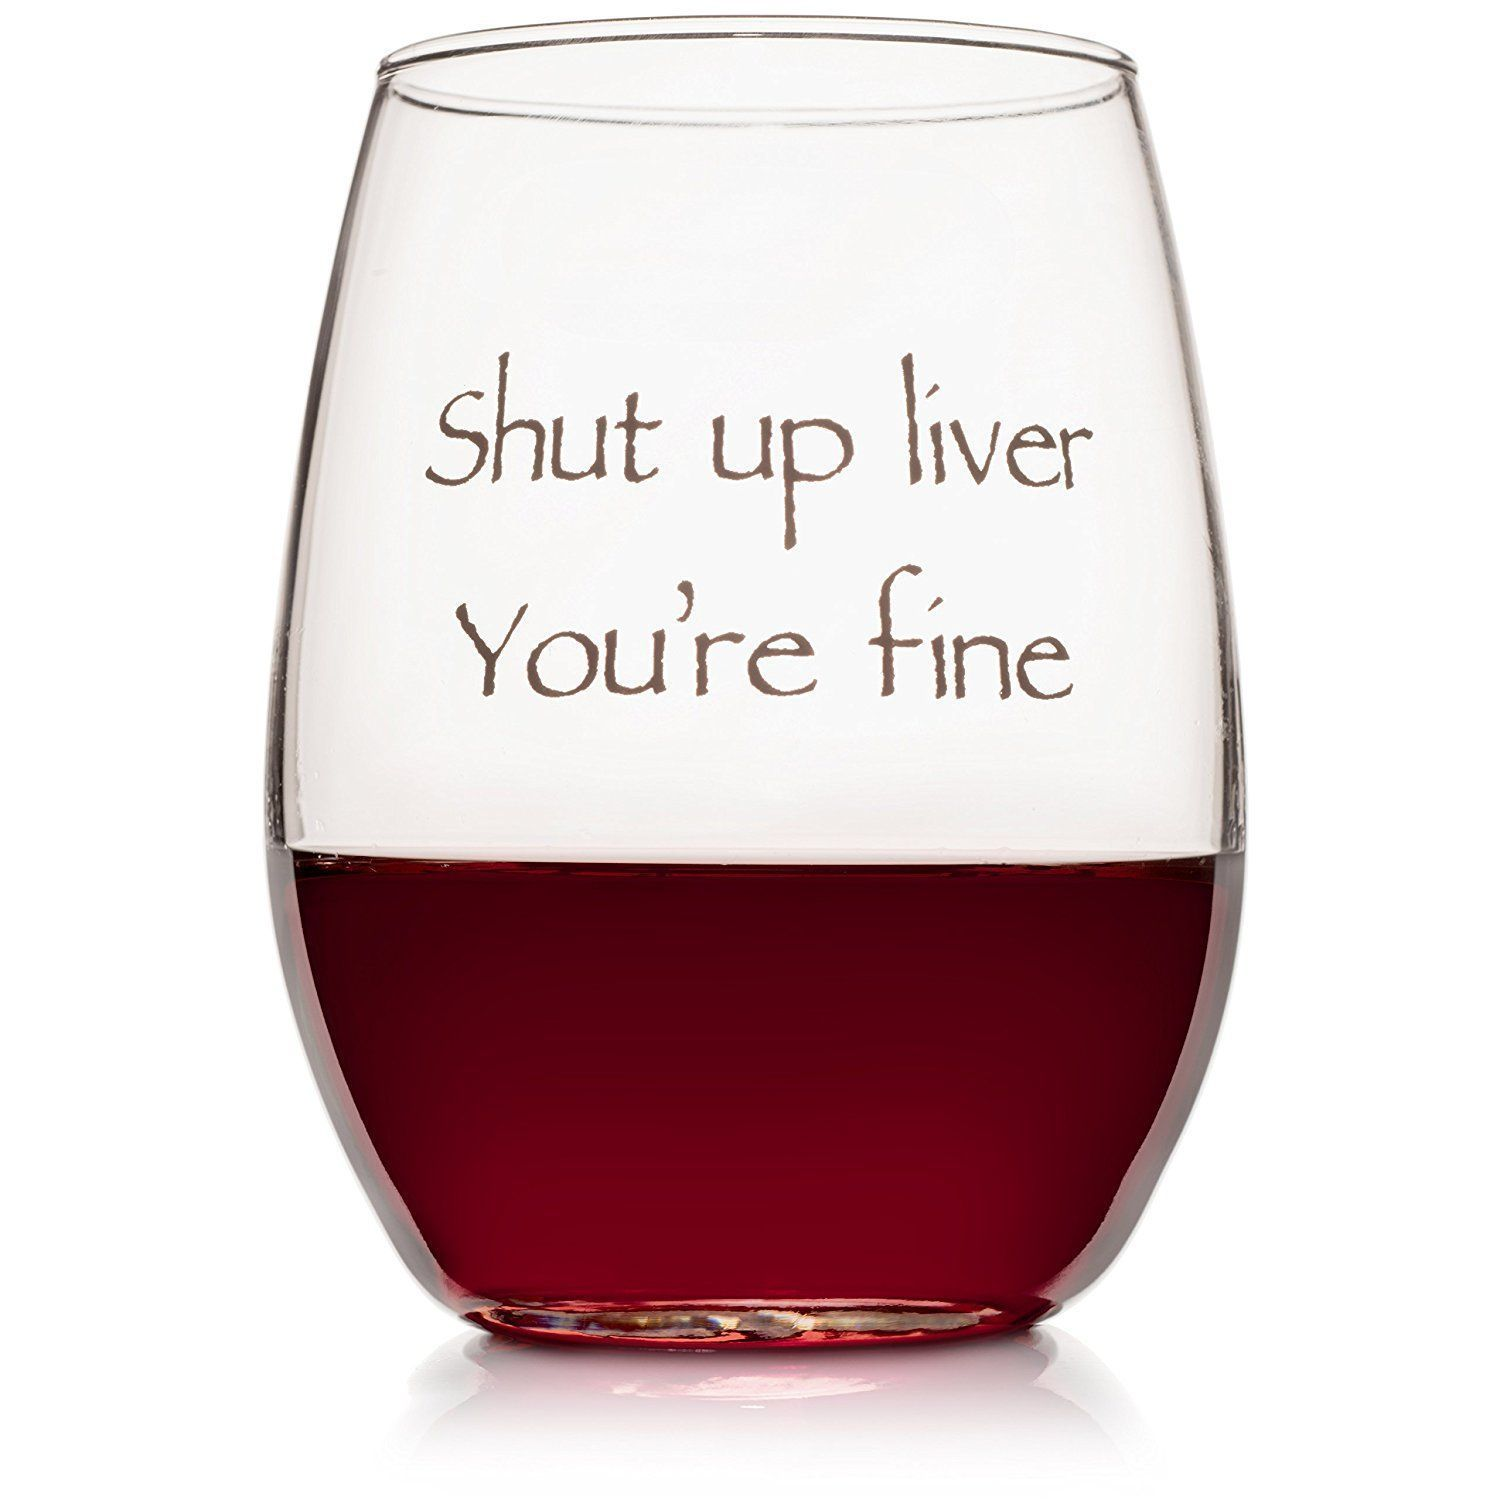 Funny Stemless Wine Glass Forget Every Worries When You Are In Mood Of Drinking Some Wine In This Funny Funny Wine Glass Funny Wine Gifts Funny Wine Glasses